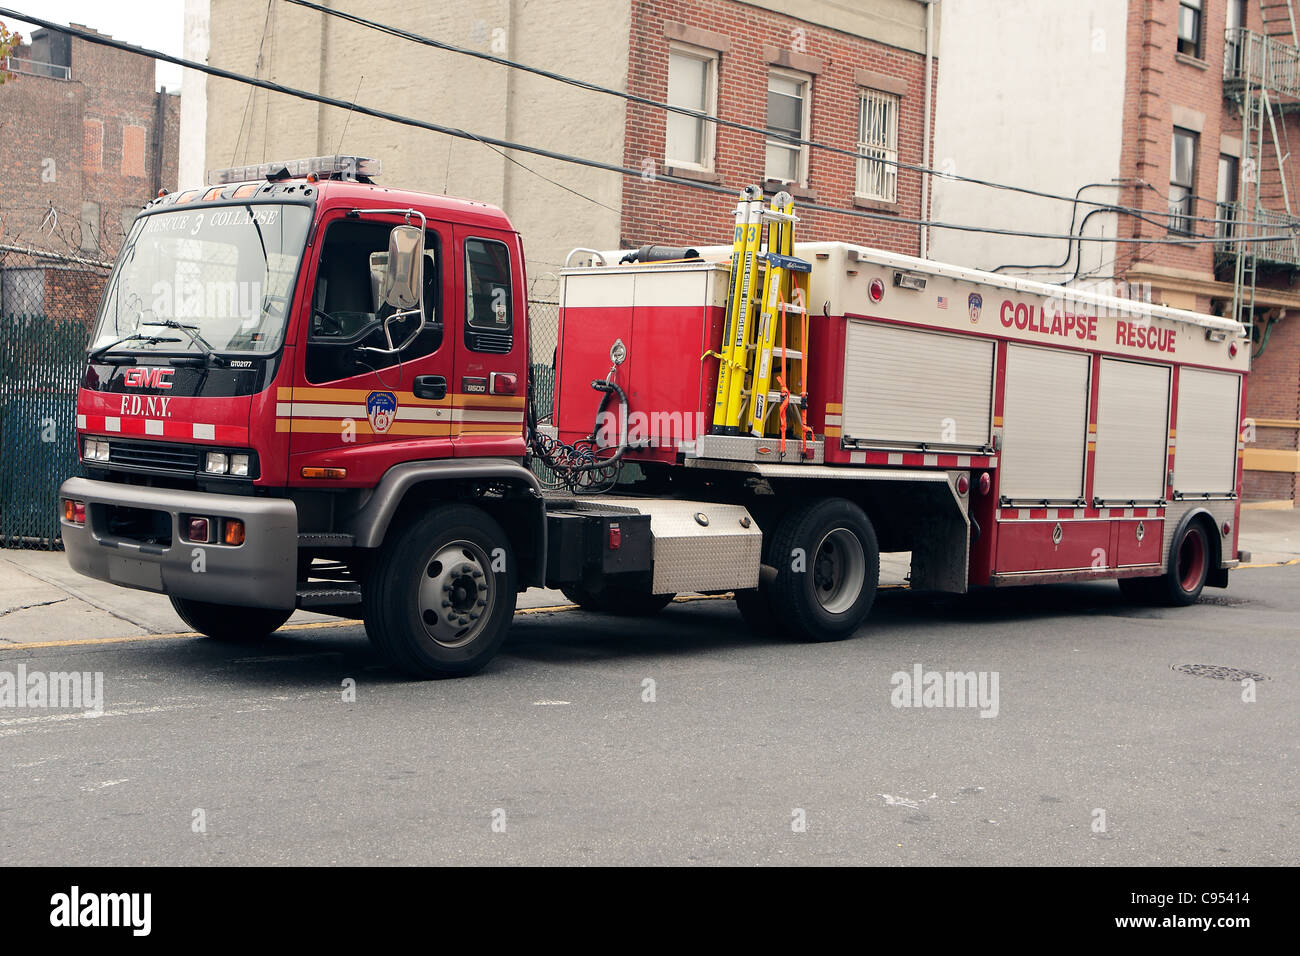 Fire Station Kit Stock Photos Images Alamy Gmc T8500 Wiring Diagram Collapse Rescue 3 Fdny Tractor Image